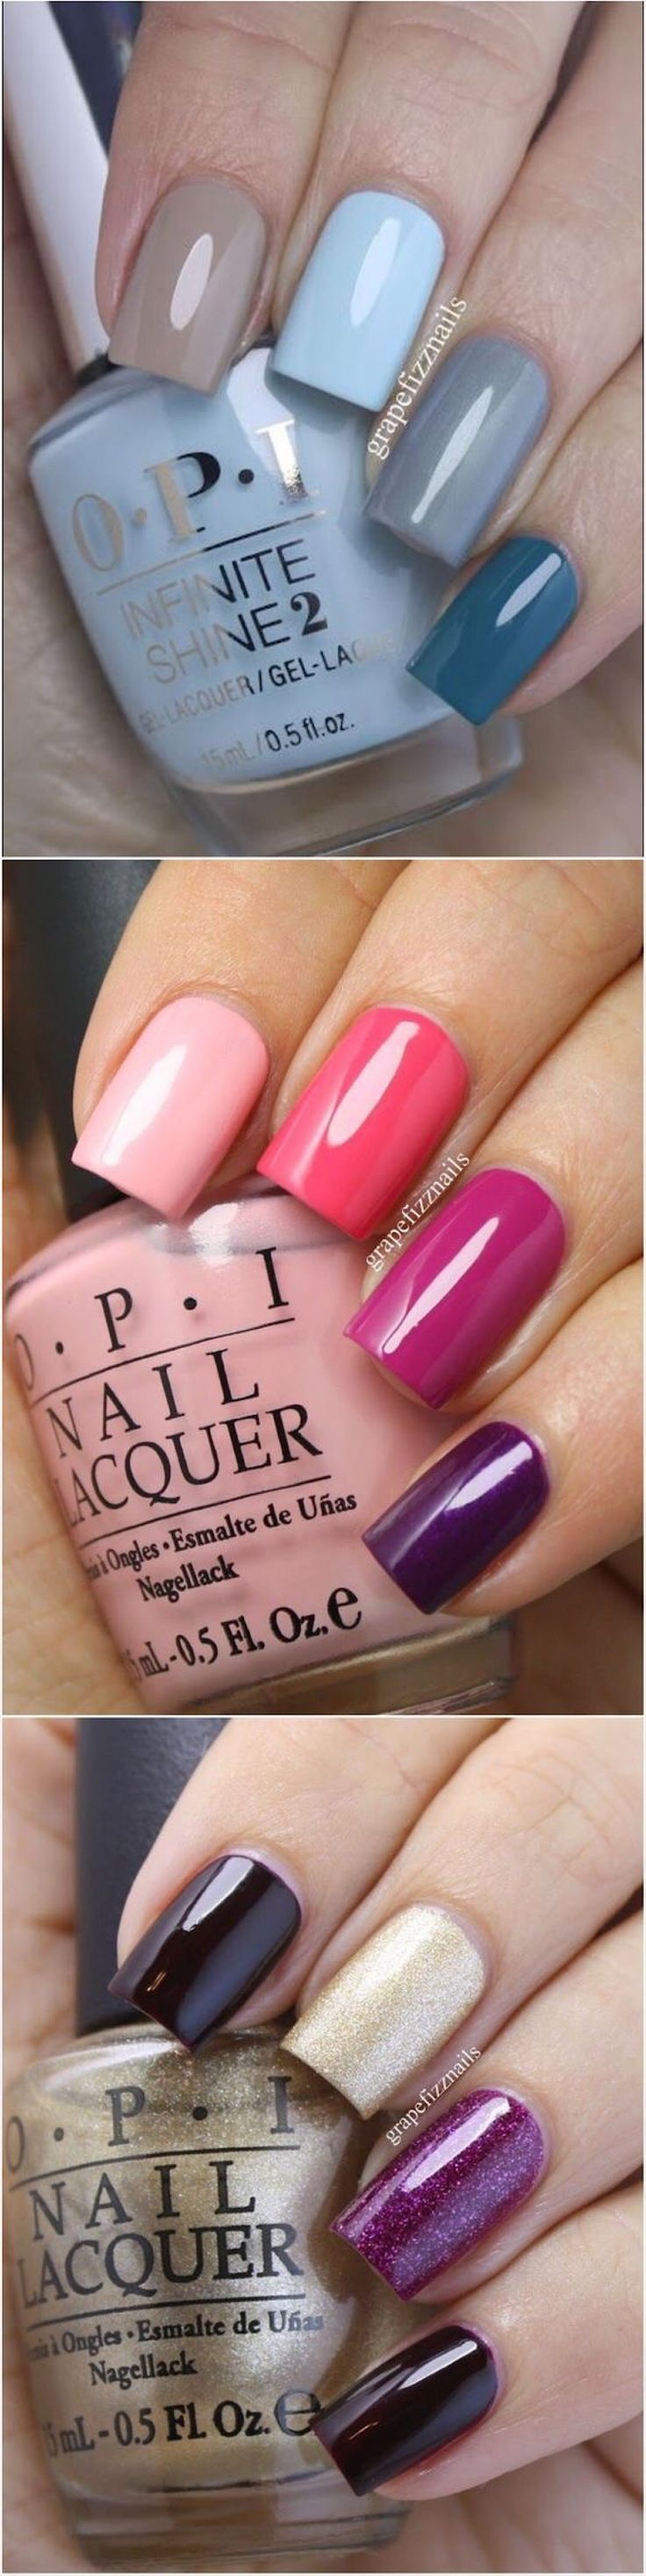 164 best Hands images on Pinterest | Nail art, Nail design and ...